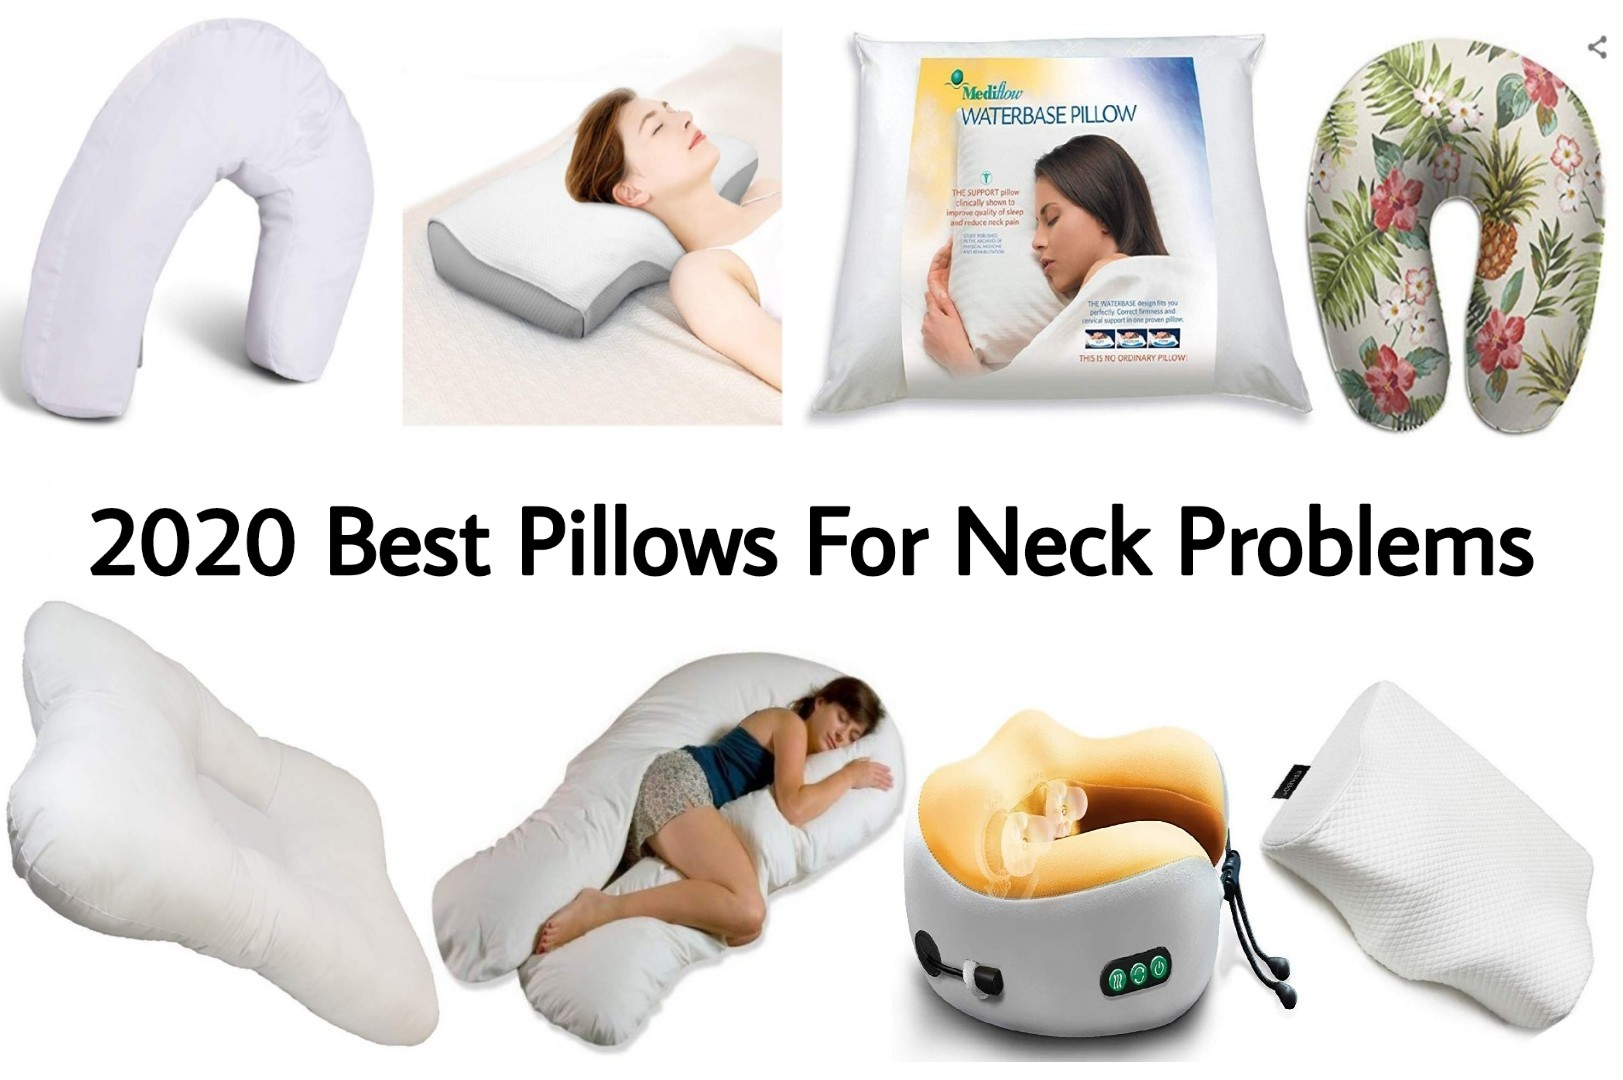 Best Pillows for Neck Pain 2019 – 2020 | Top Pillows for Neck Problems